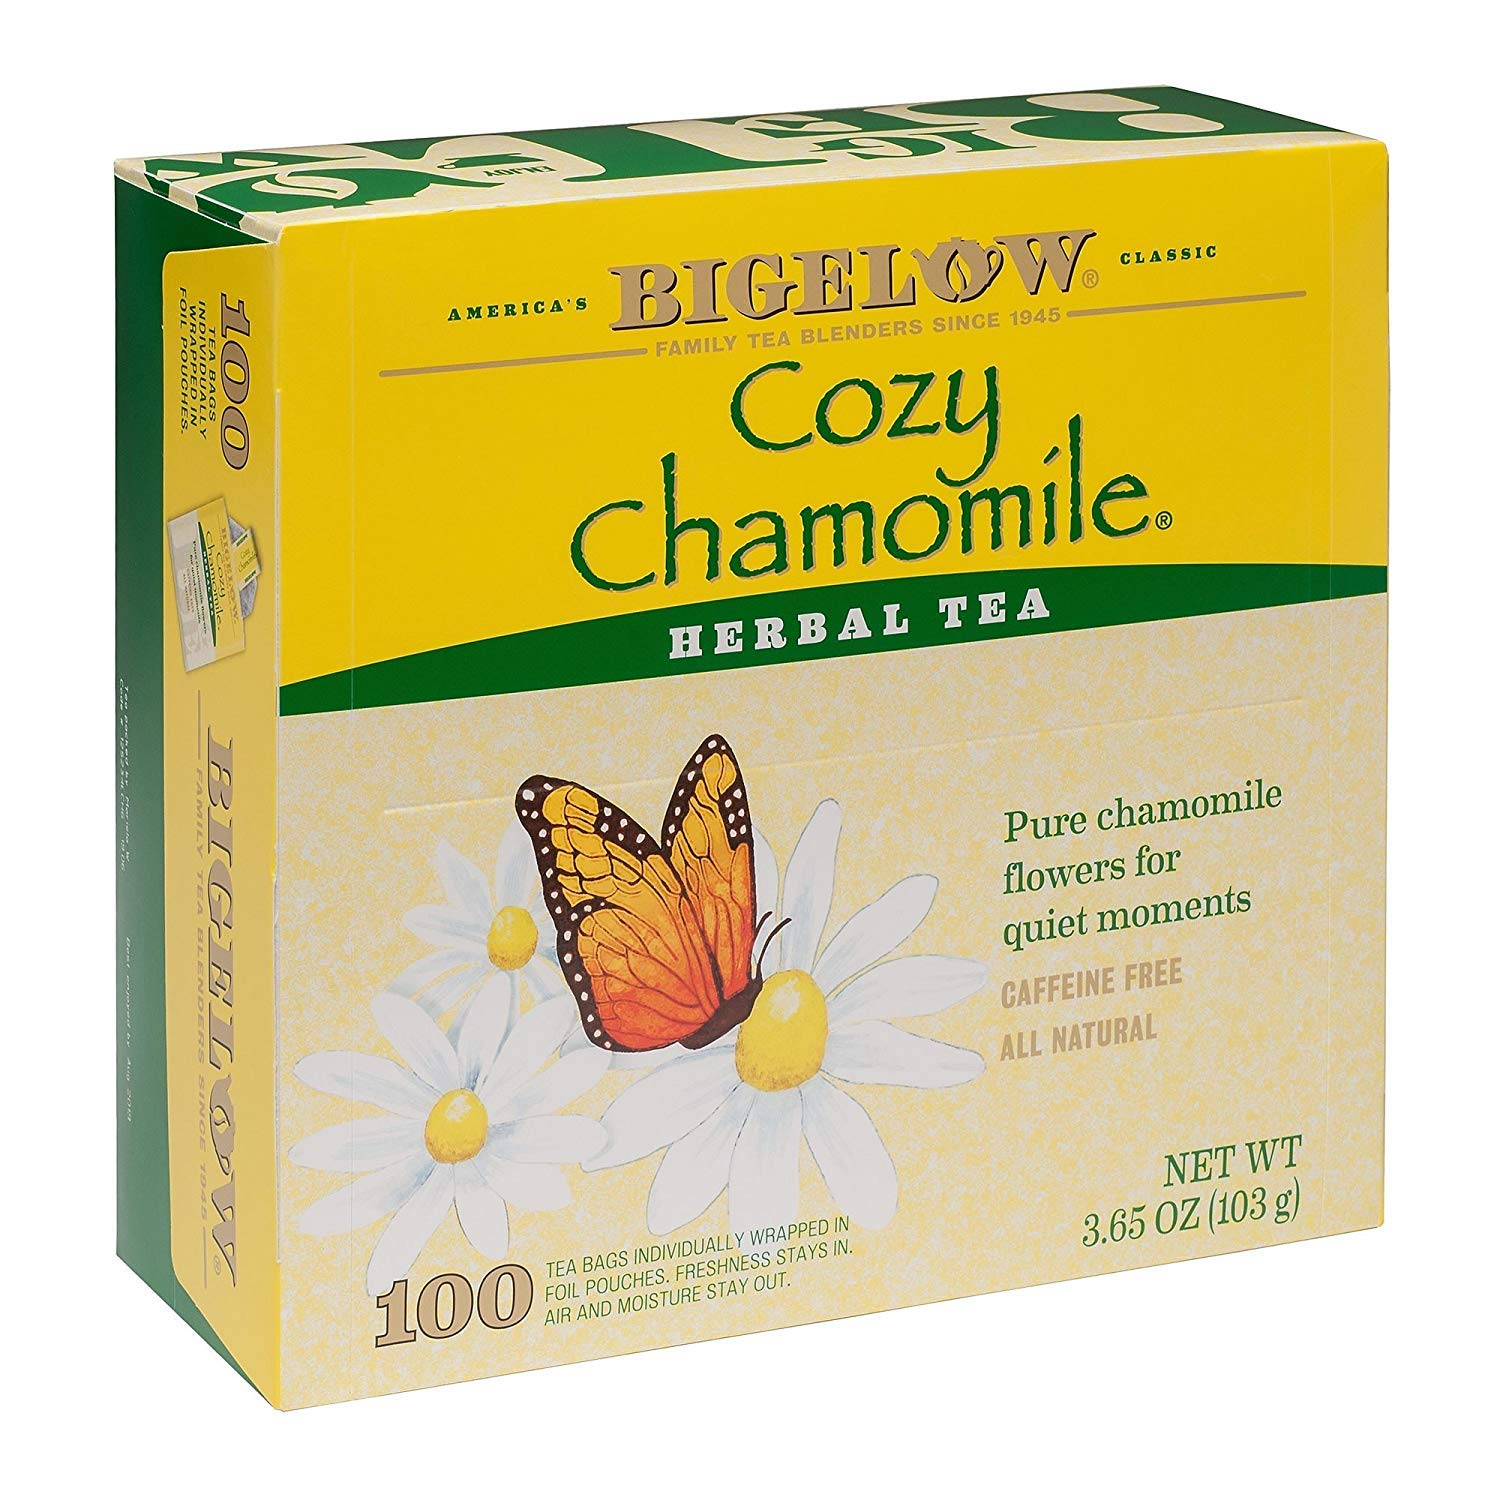 Bigelow Cozy Chamomile Tea, 100 ct. sleeping pills or otc sleep aids - 71J7HTbzo5L - Sleeping pills or OTC sleep aids – risks and side effects